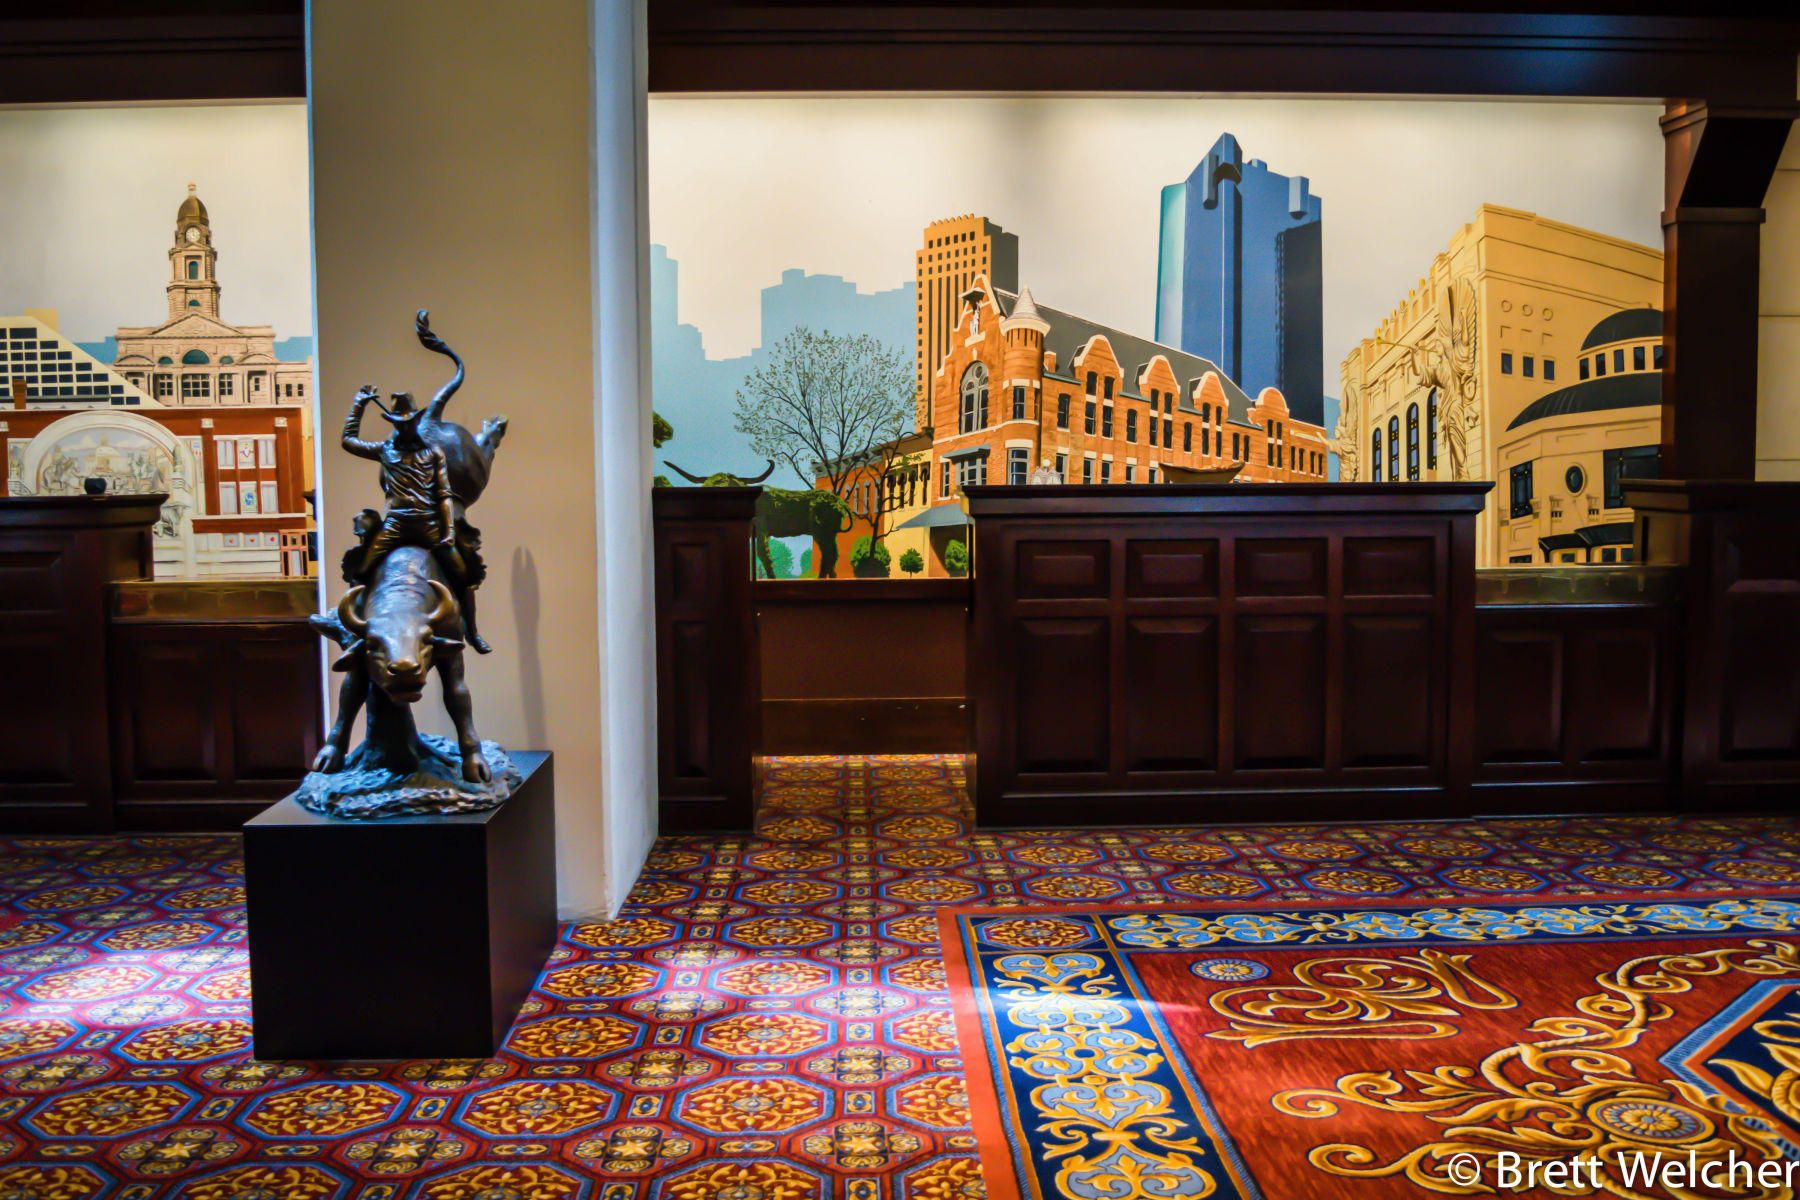 The Worthington Renaissance Lobby - Fort Worth, Texas